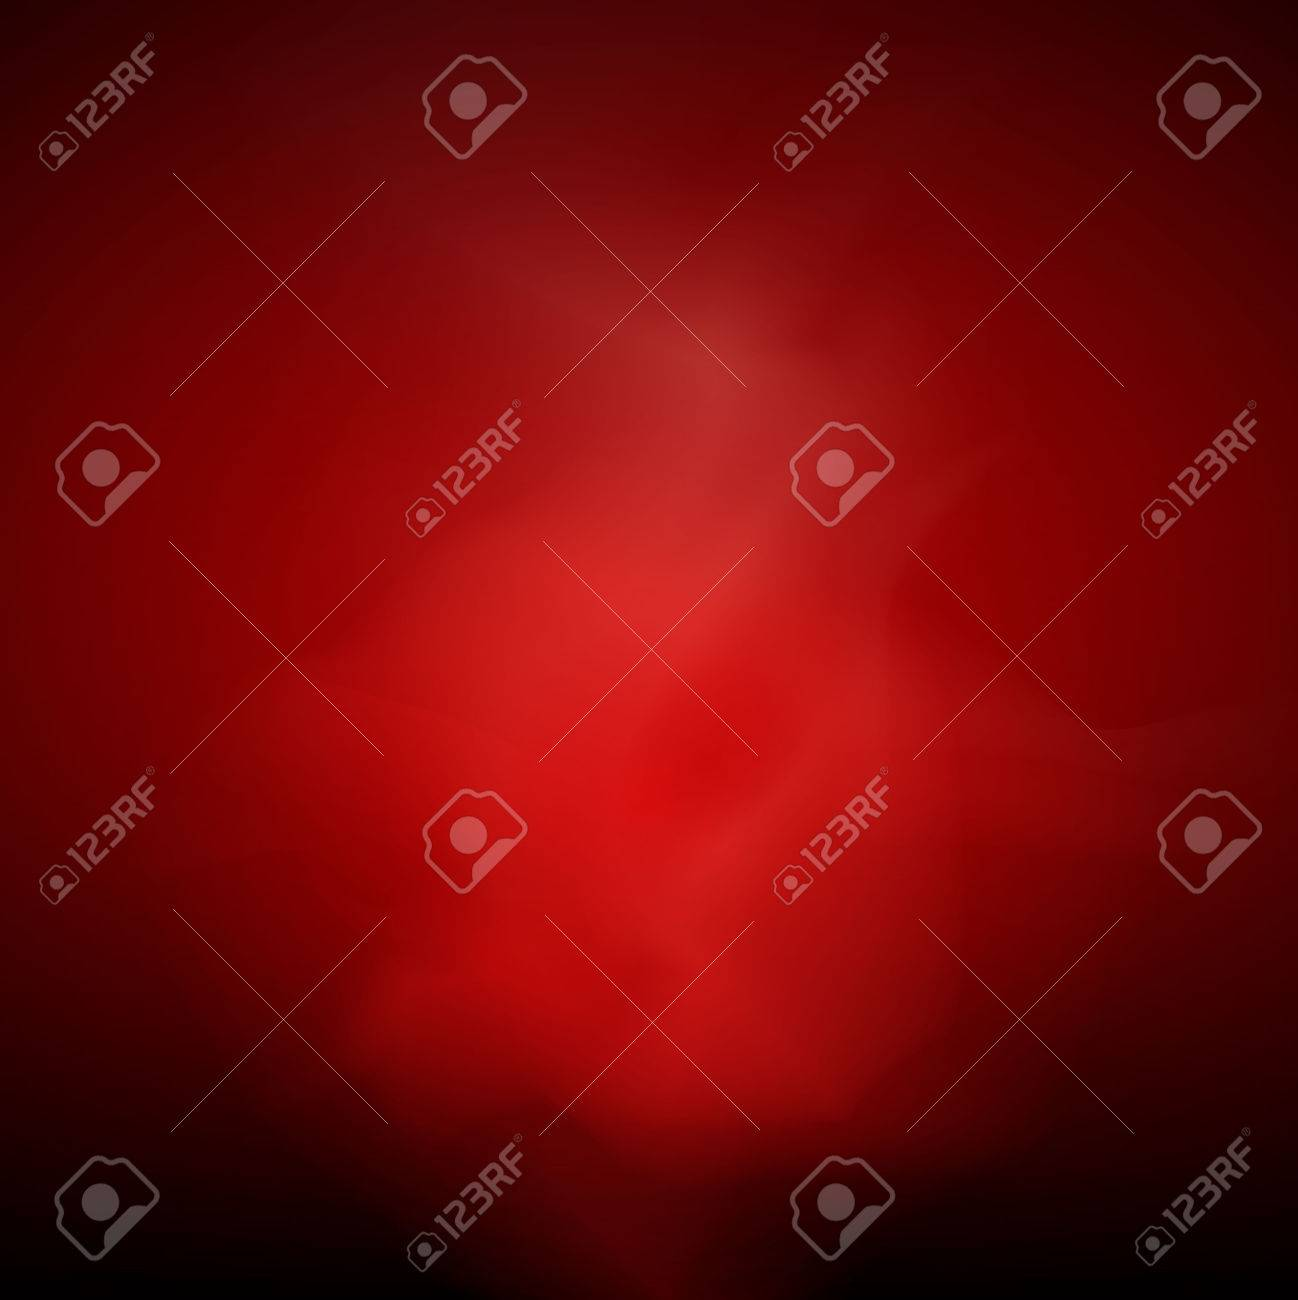 red Cloud backgrounds abstract unusual illustration - 47166288